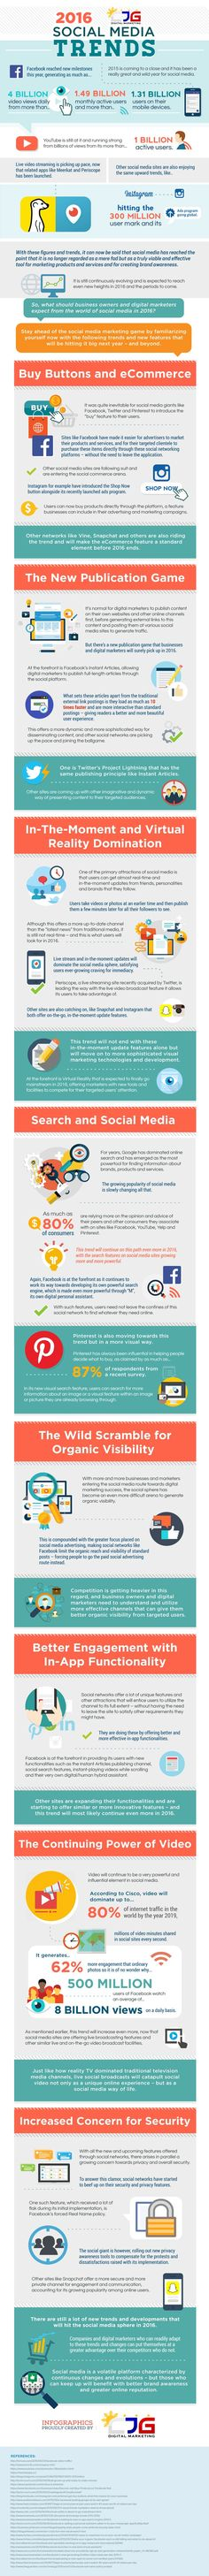 Social Media Marketing Trends 2016: Insights & Predictions - #infographic #radicalmarketing